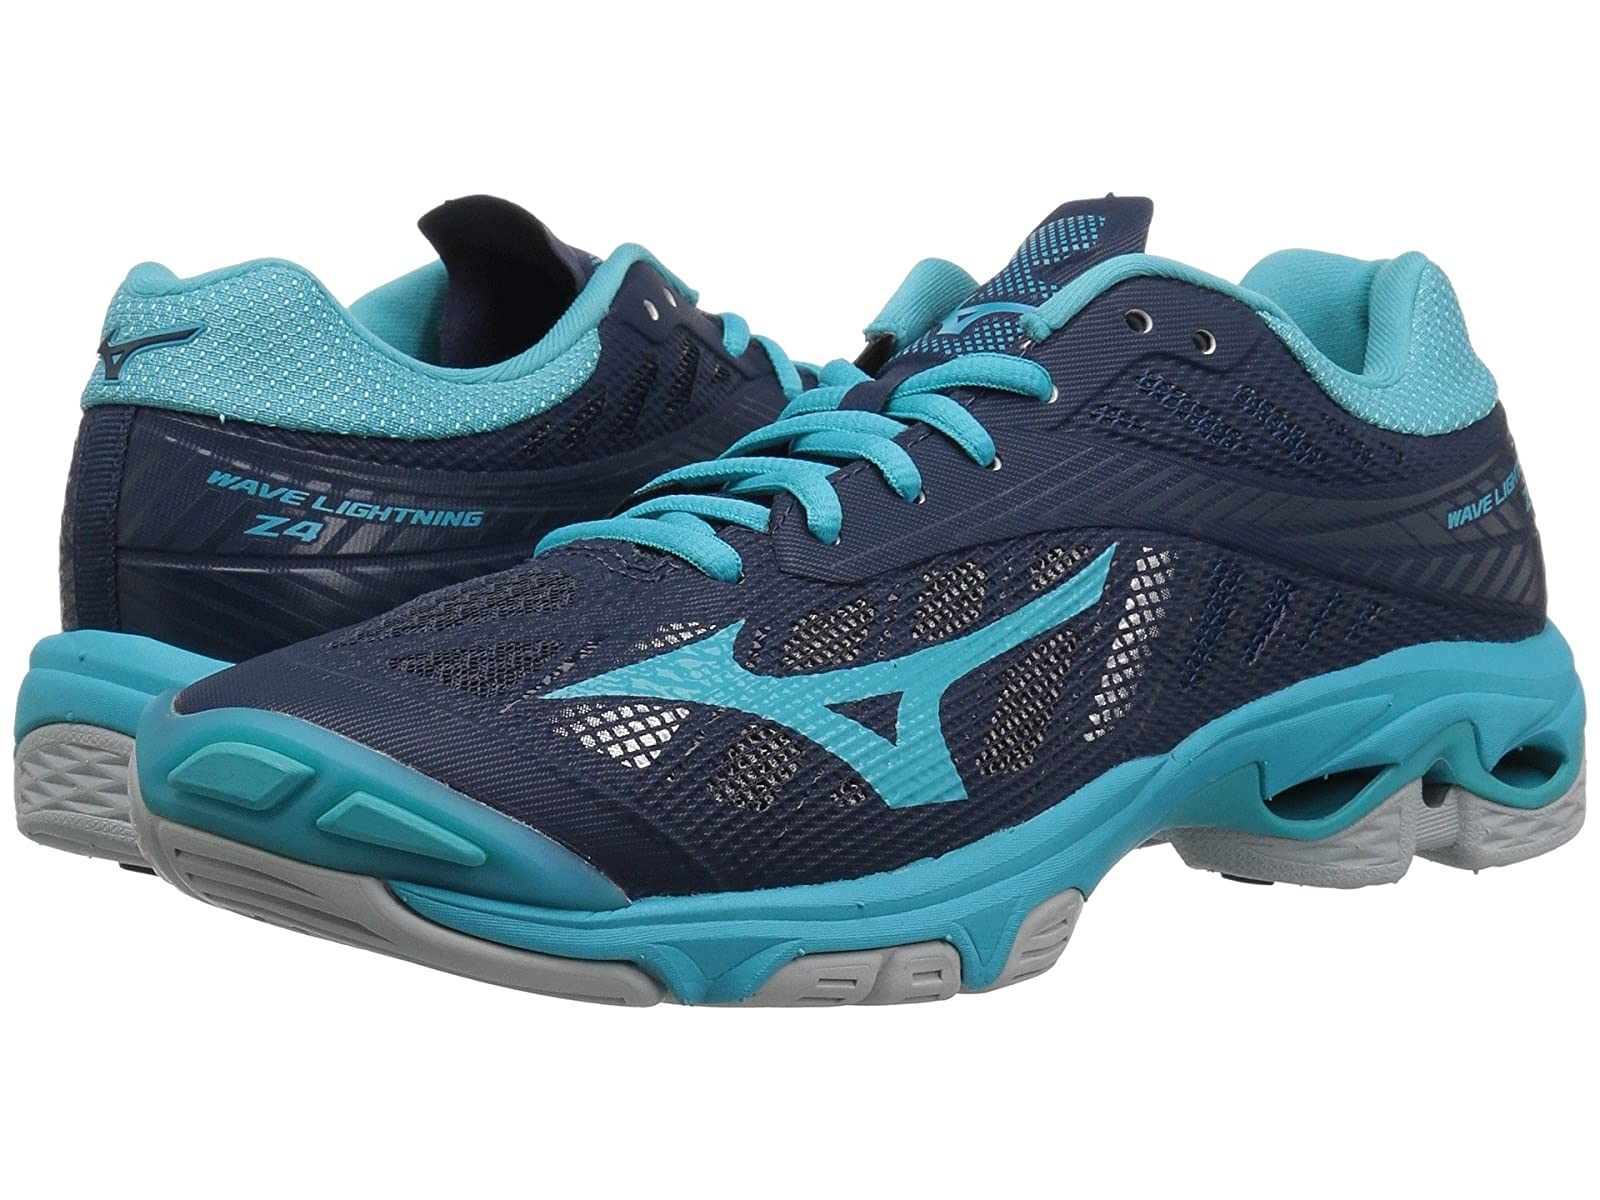 Mizuno Wave Lightning Z4Atmospheric grades have affordable shoes